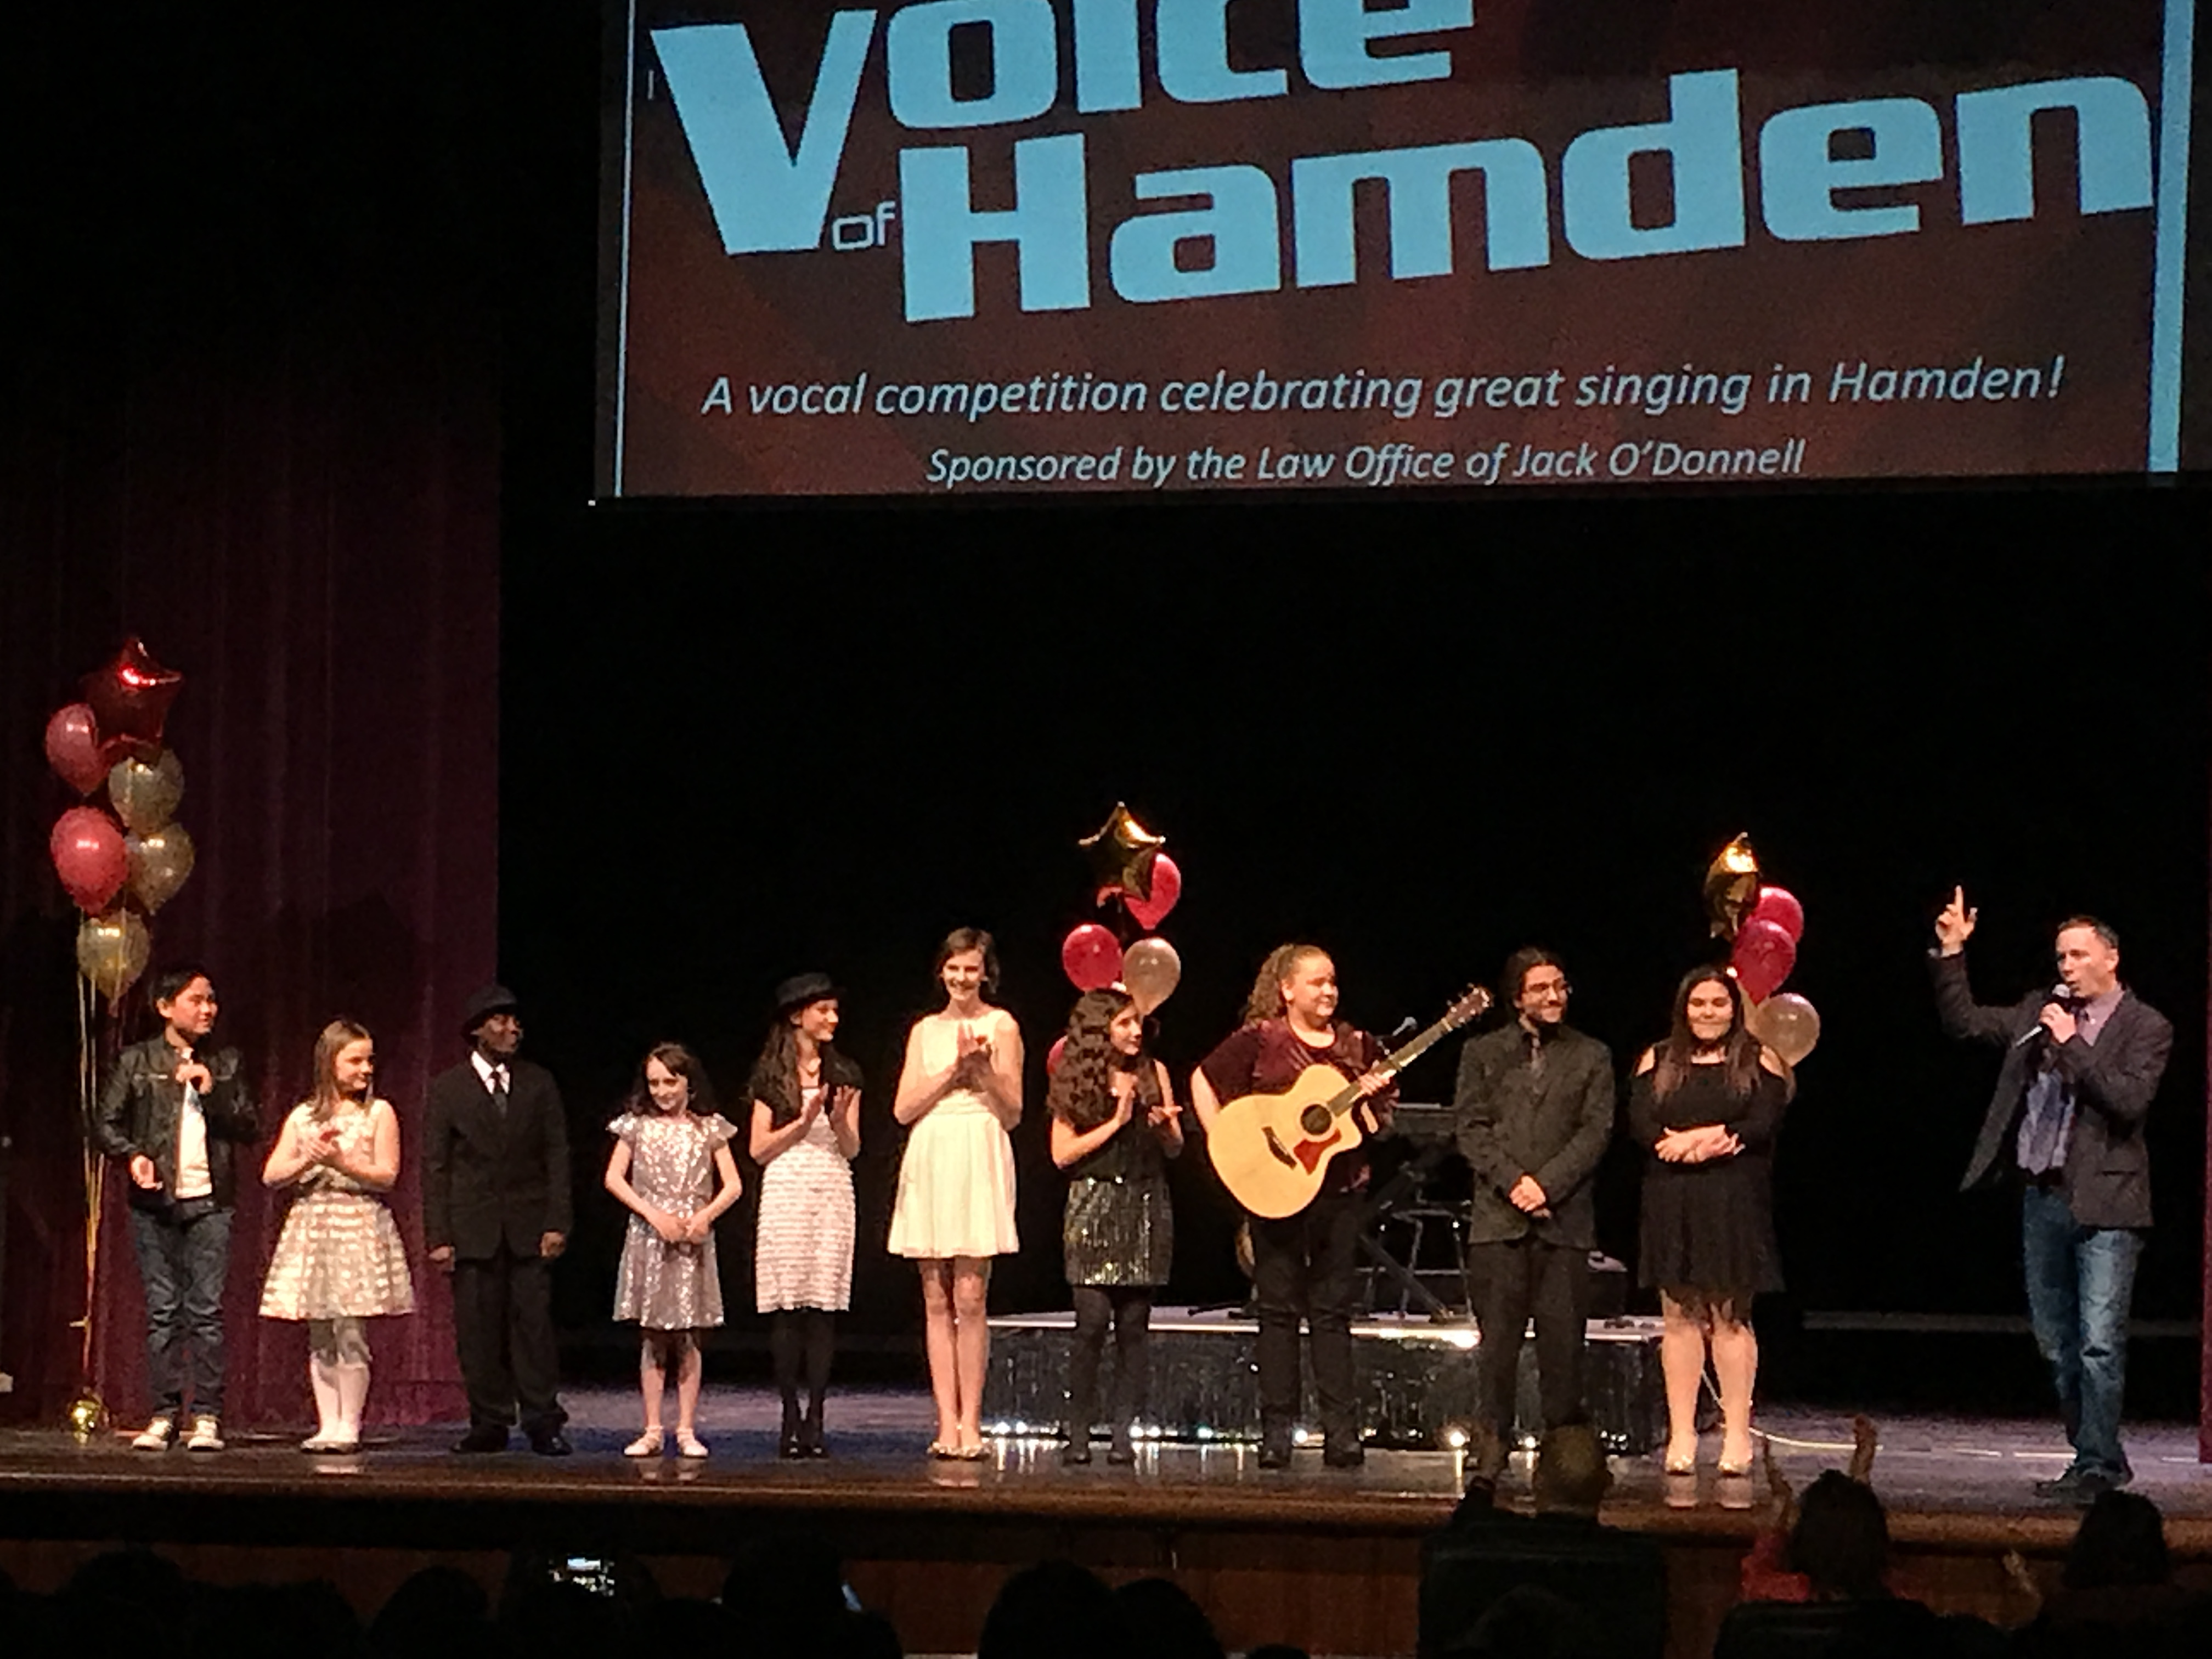 performers on stage at the Voice of Hamden